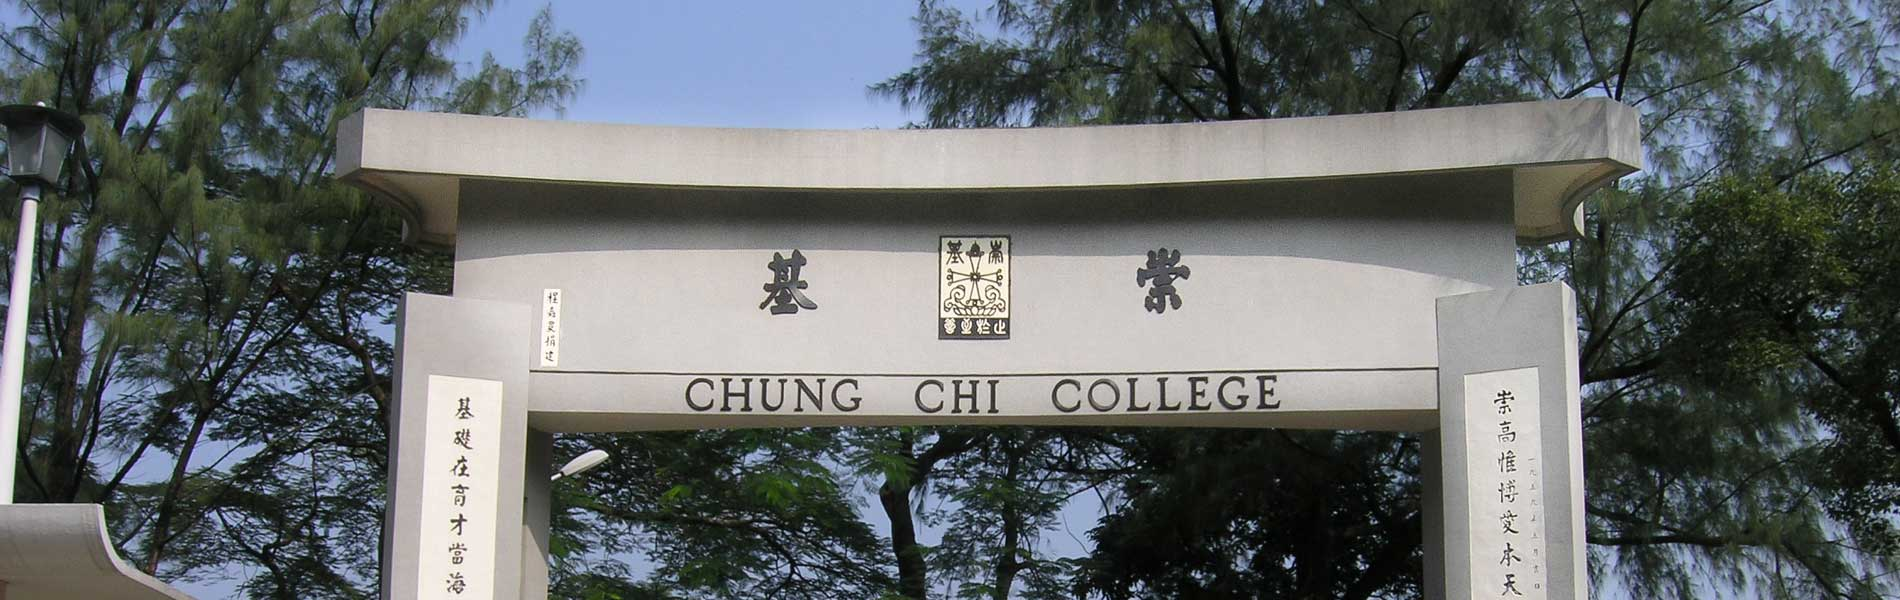 University YMCA Chung Chi College, The Chinese University of Hong Kong Photo